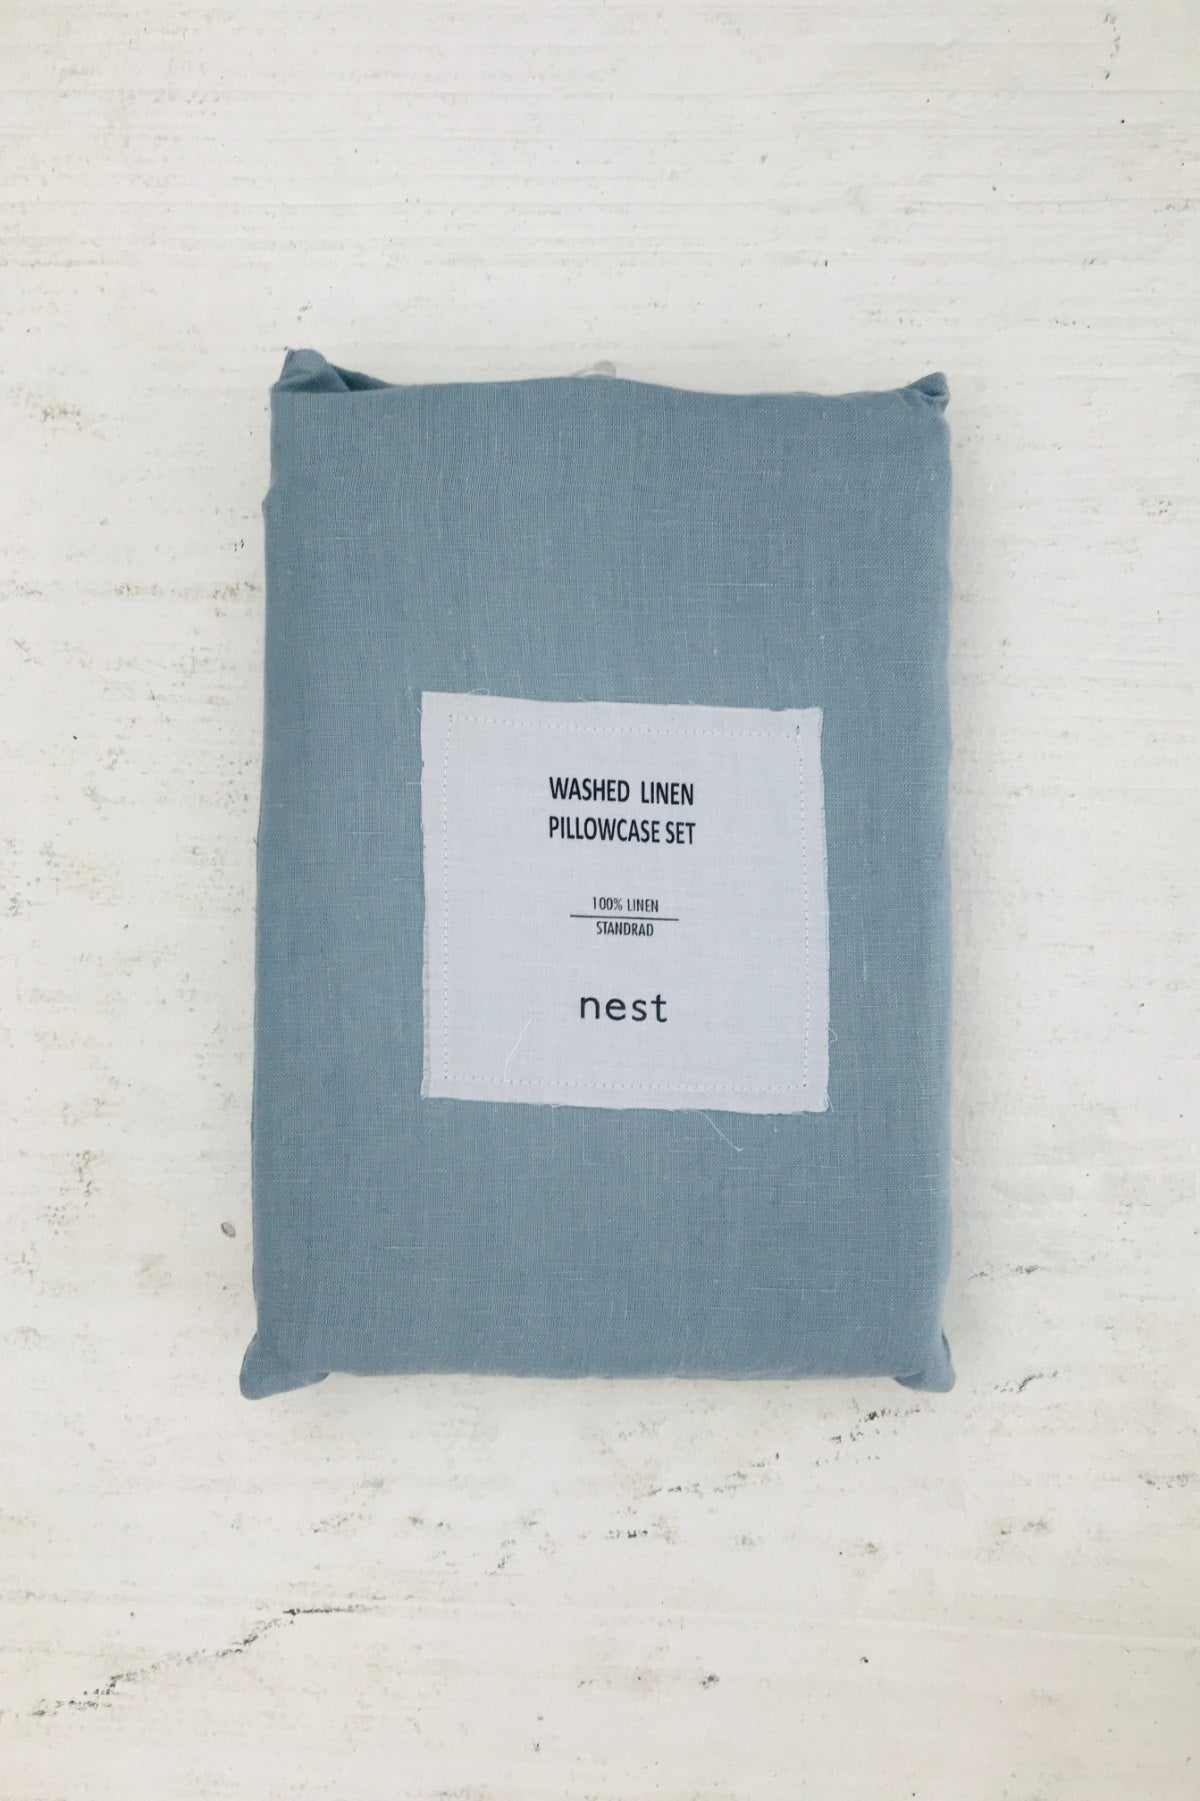 washed linen pillowcases set of 2 dusty blue - 50% off